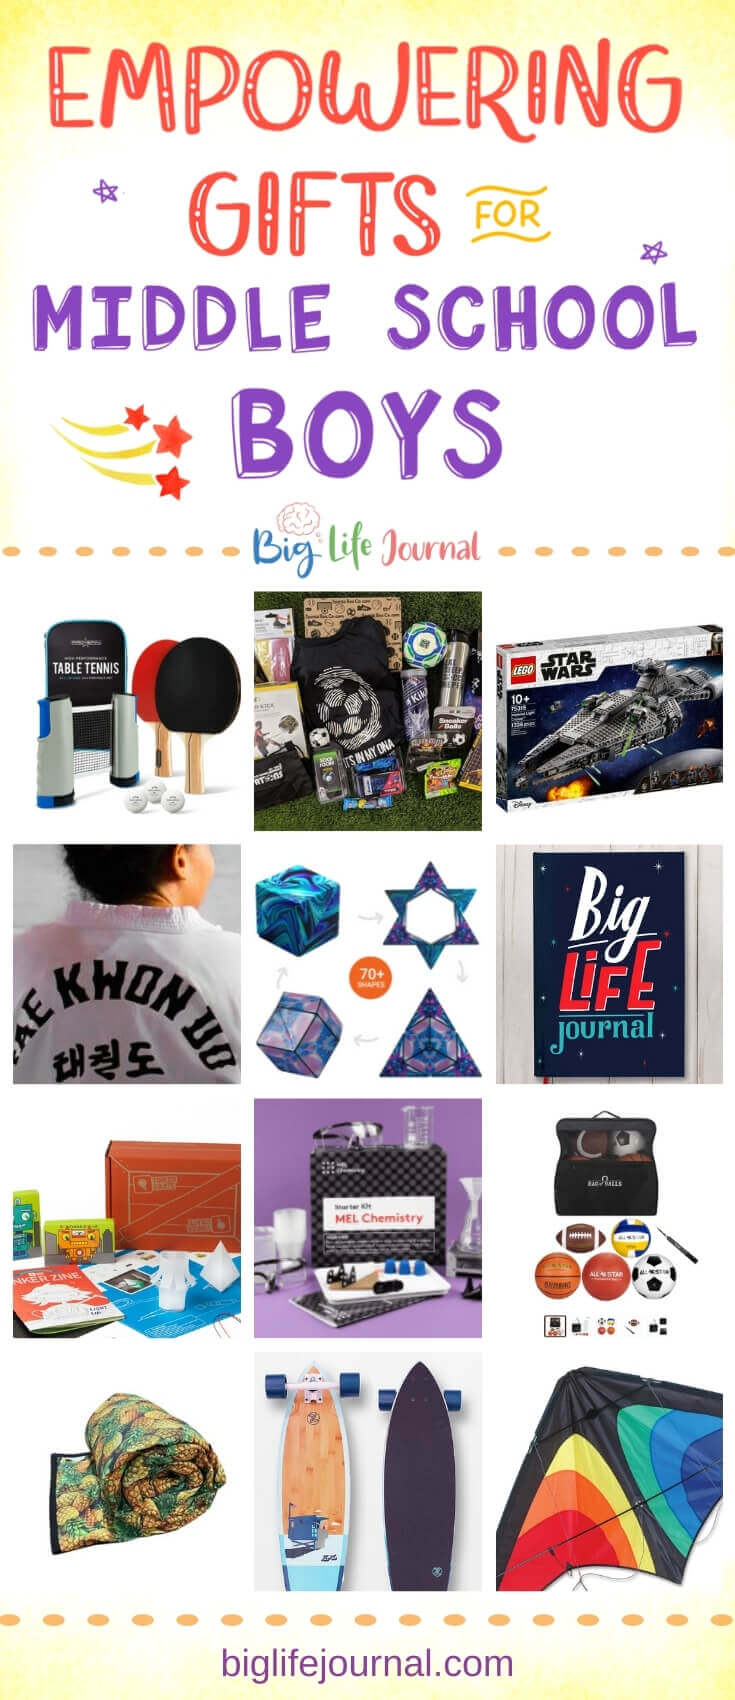 15 Gifts for Middle School Boys